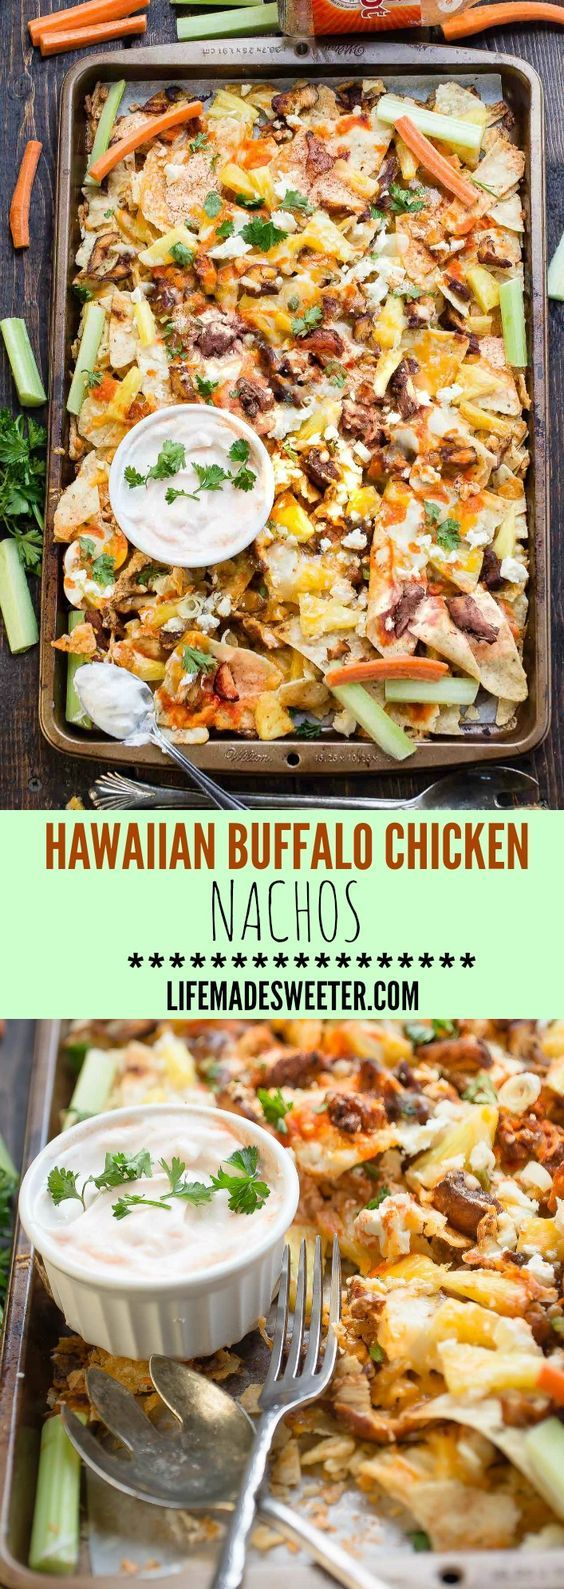 Hawaiian Buffalo Chicken Nachos make the perfect appetizers / snacks for a party or game day! So easy to make and loaded with tender juicy chicken & buffalo sauce!